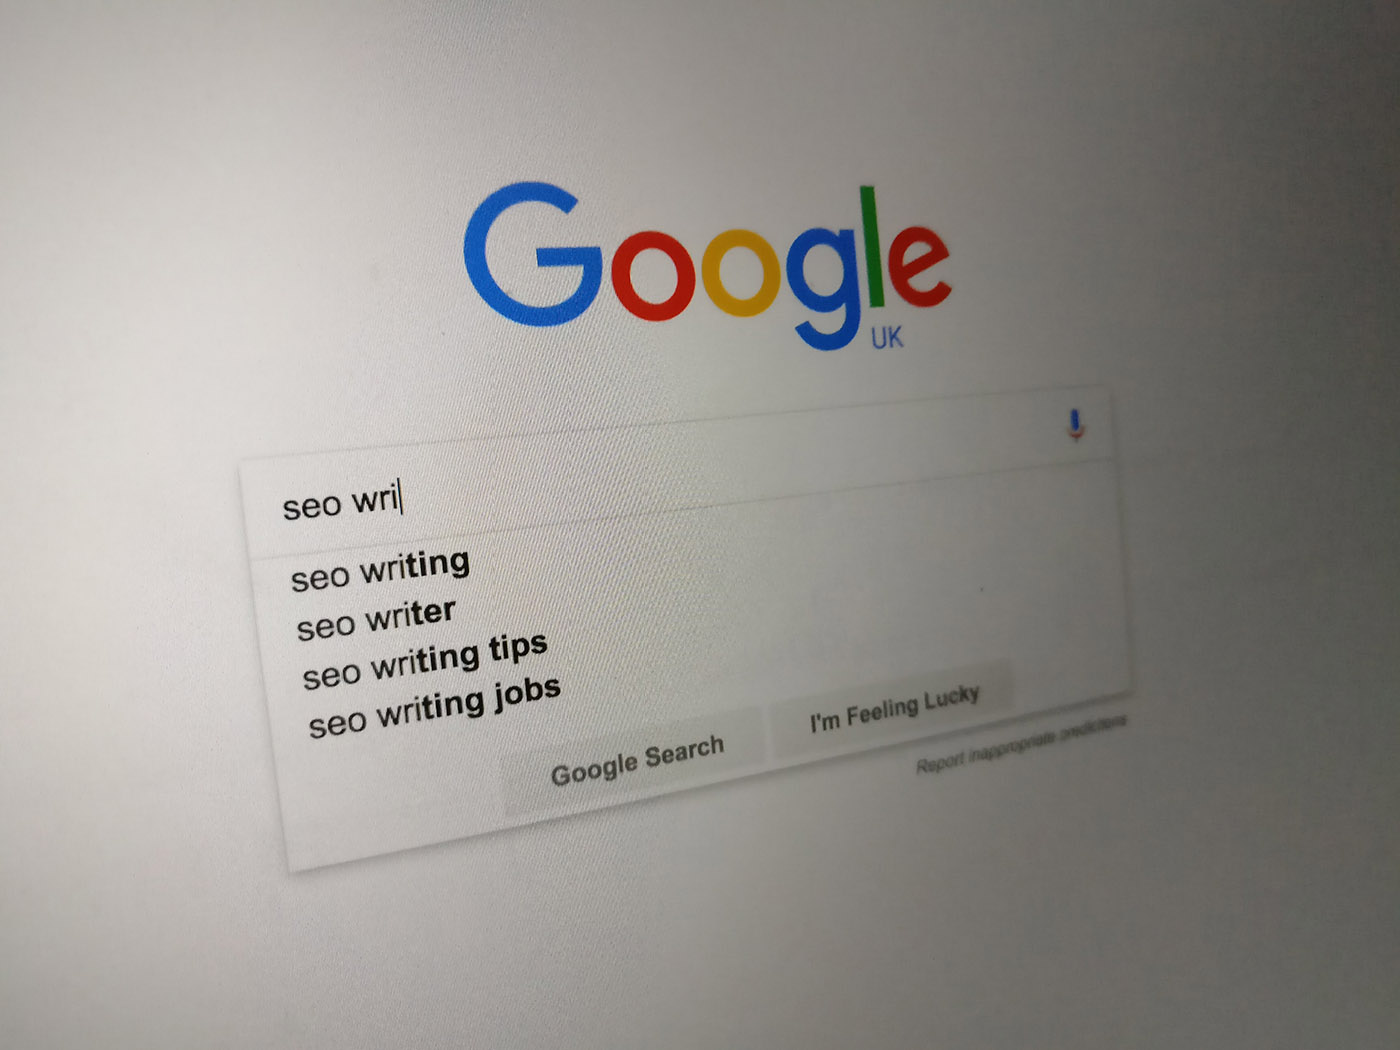 SEO Copywriting: Why Your Readers Should Come First